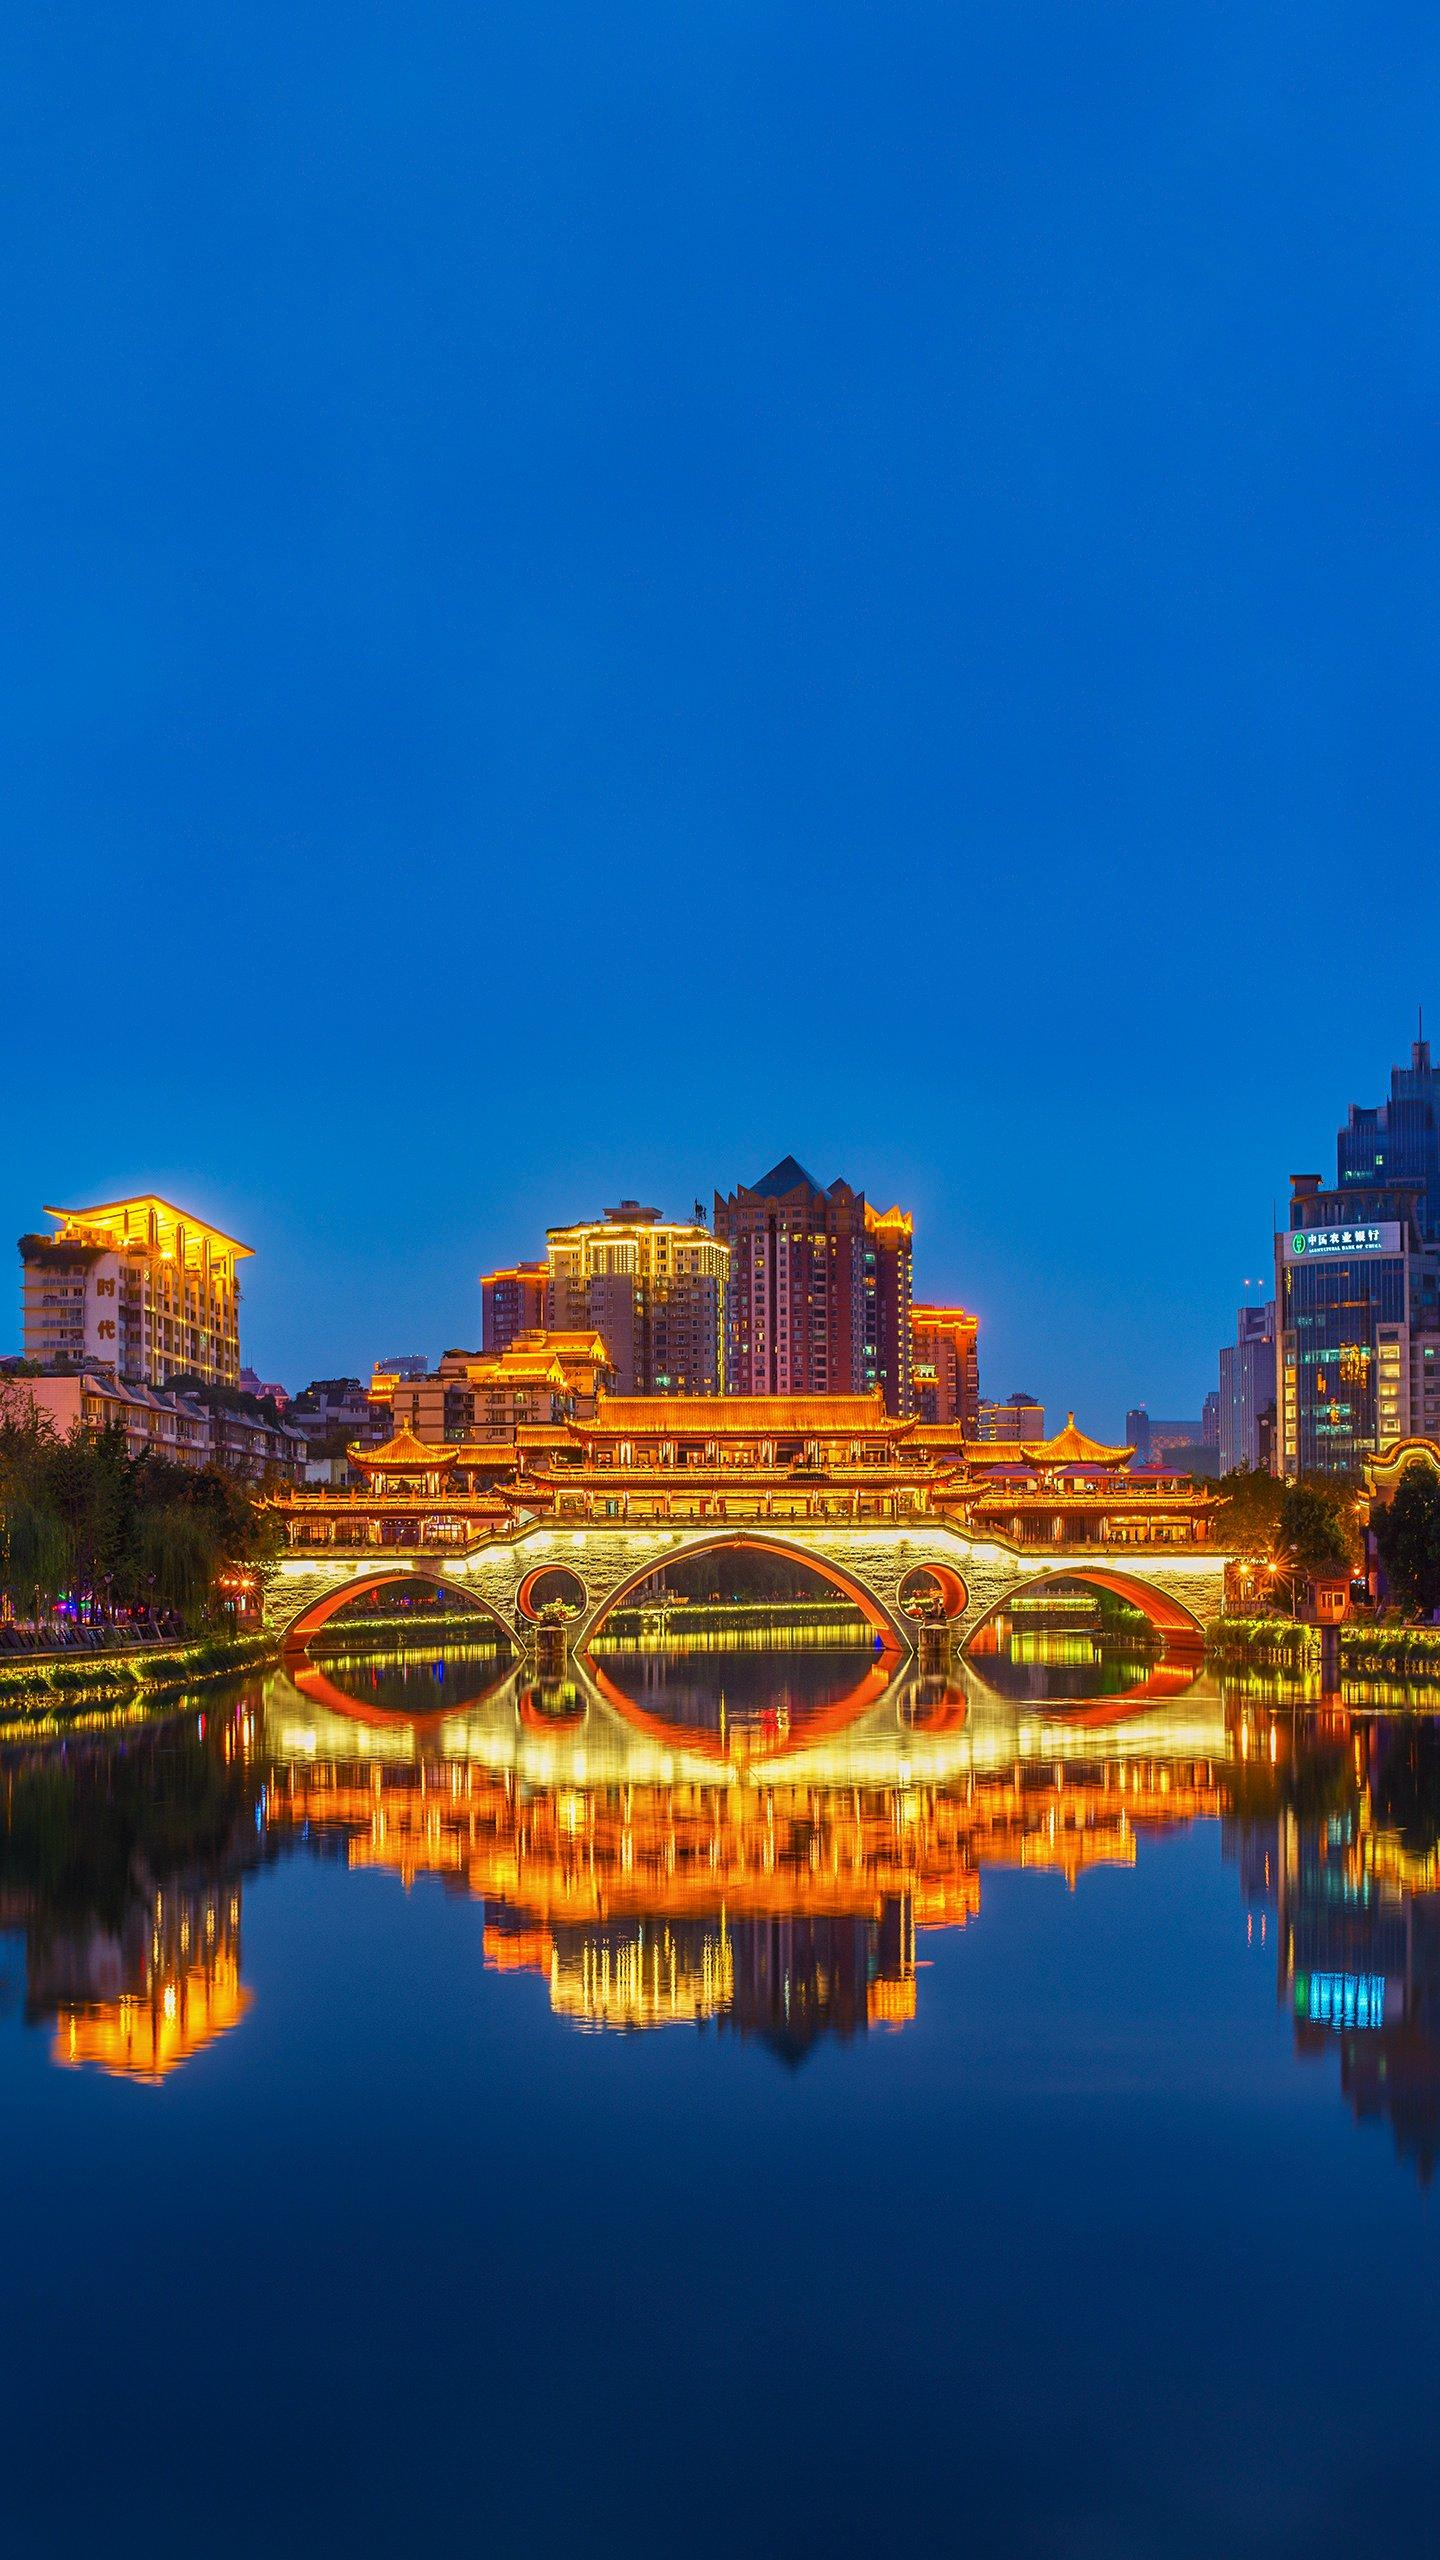 Chengdu - Anshun Covered Bridge. The bridge deck and the red wall of the archway, the cornice, the curved porch, highly concentrated the essence of Chinese national architectural style.